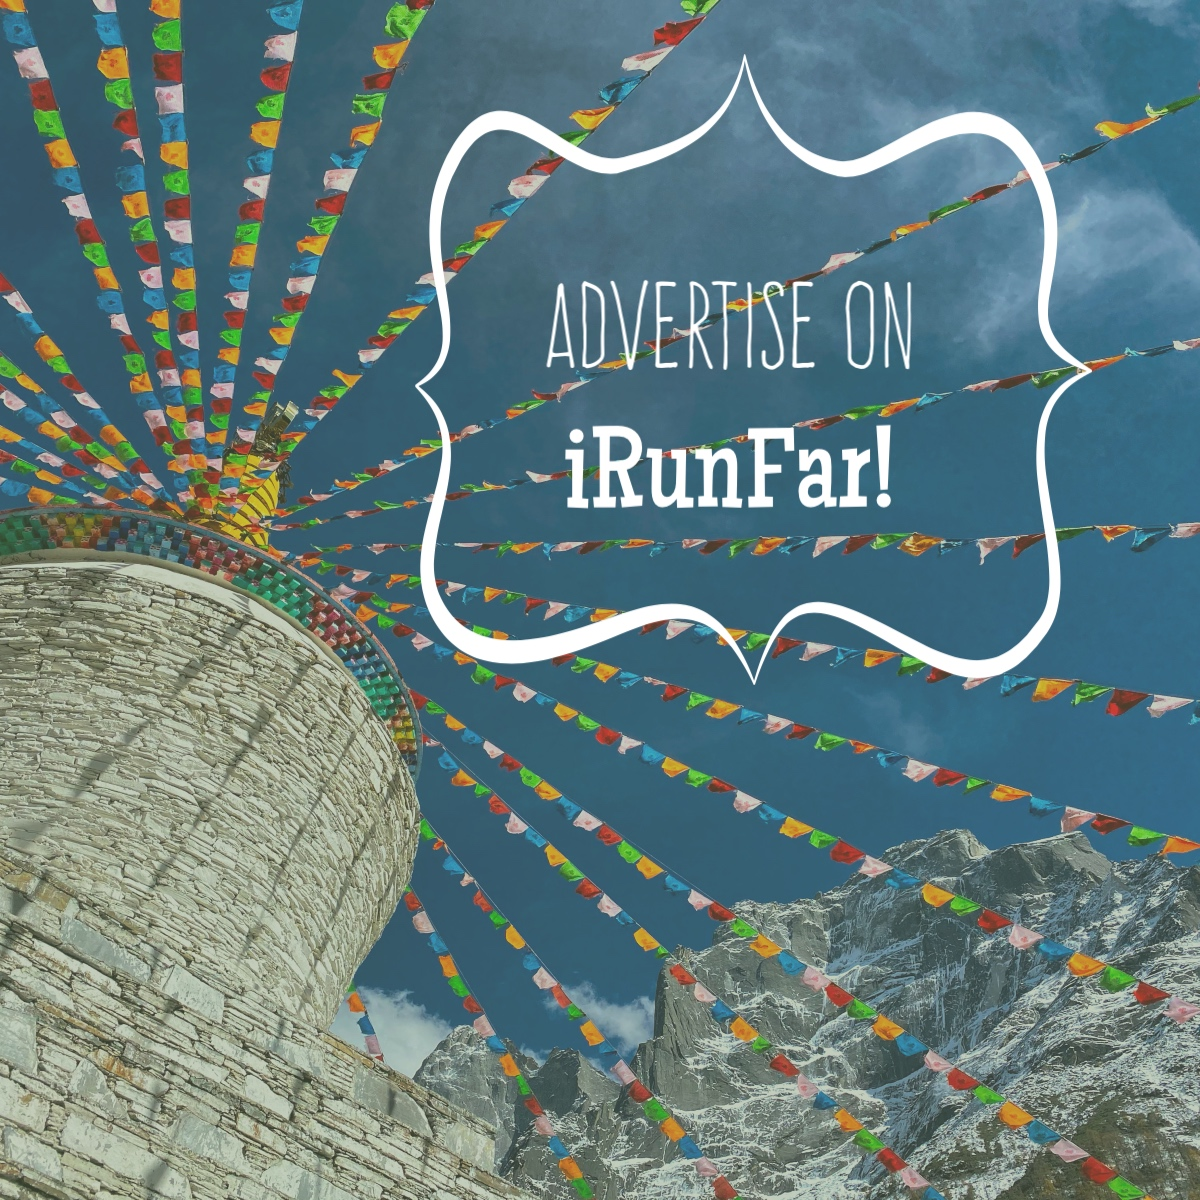 Do you put on a race or work at a company looking to reach trail runners and ultrarunners? If so, consider advertising with iRunFar in 2020.   Get in touch to learn more: http://bit.ly/iRFadspic.twitter.com/d3QlhlG4uT